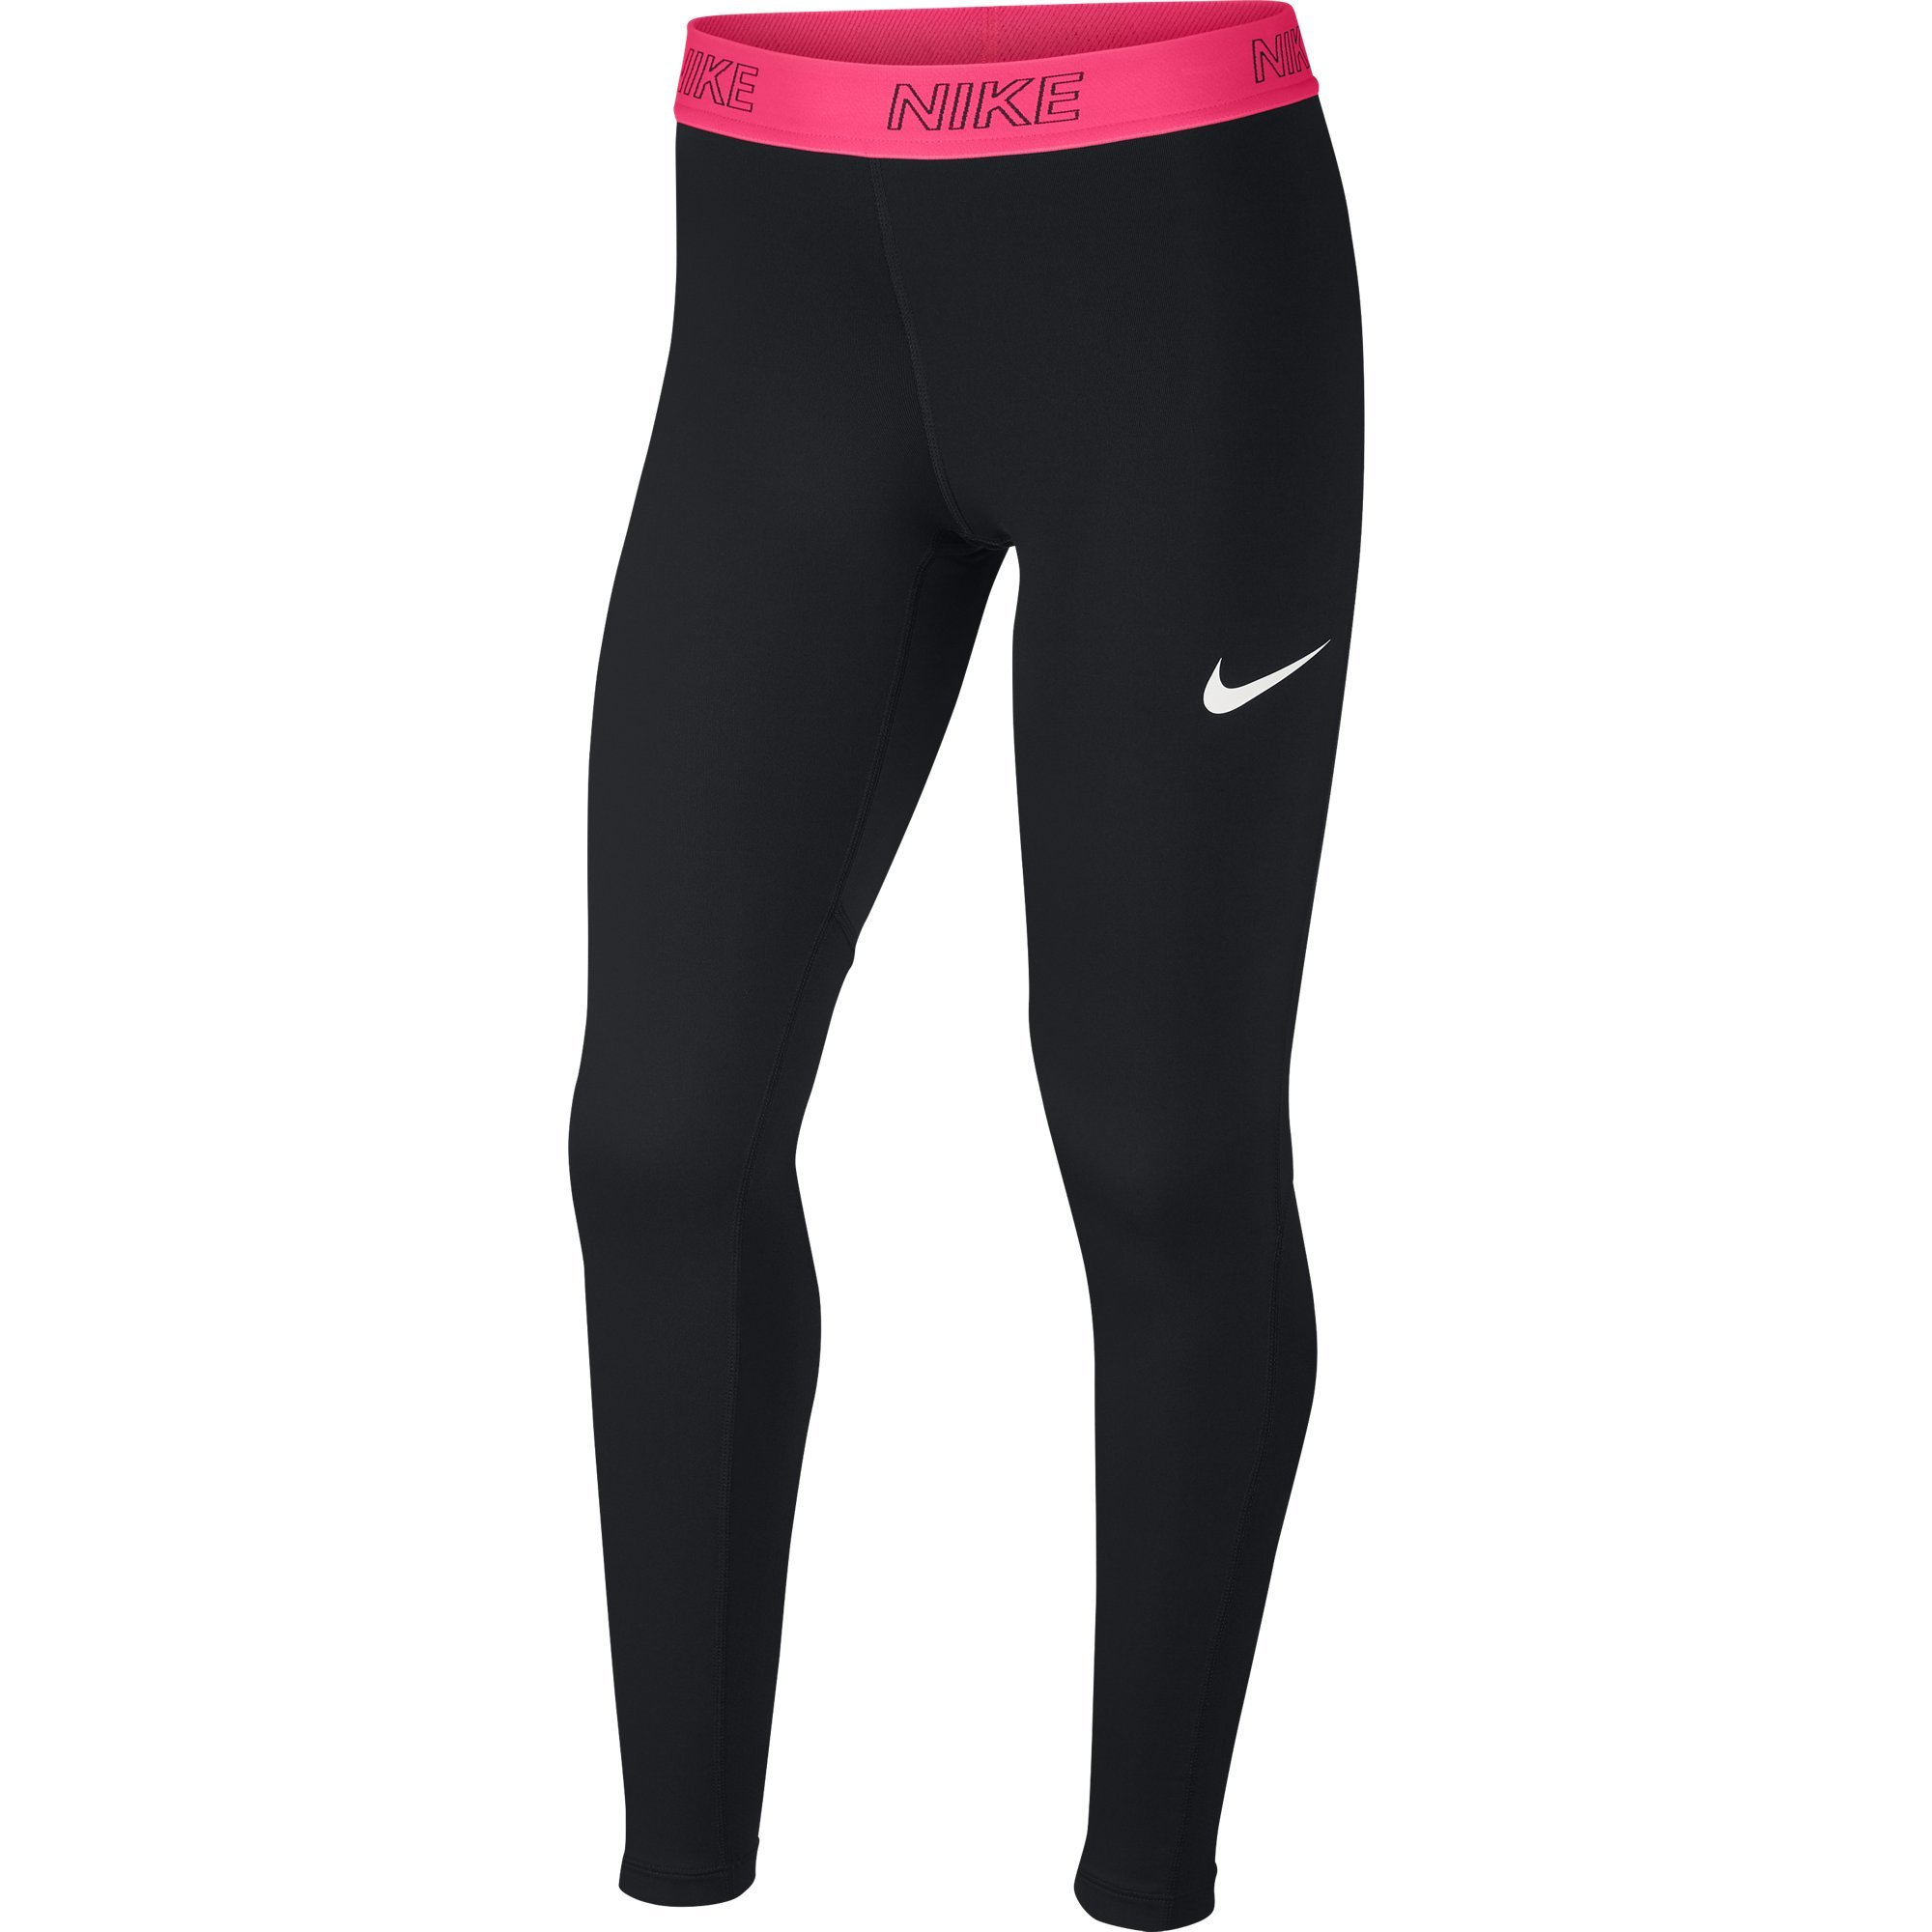 NIKE Girls' Victory Tights, Black/Racer Pink/White, Small by Nike